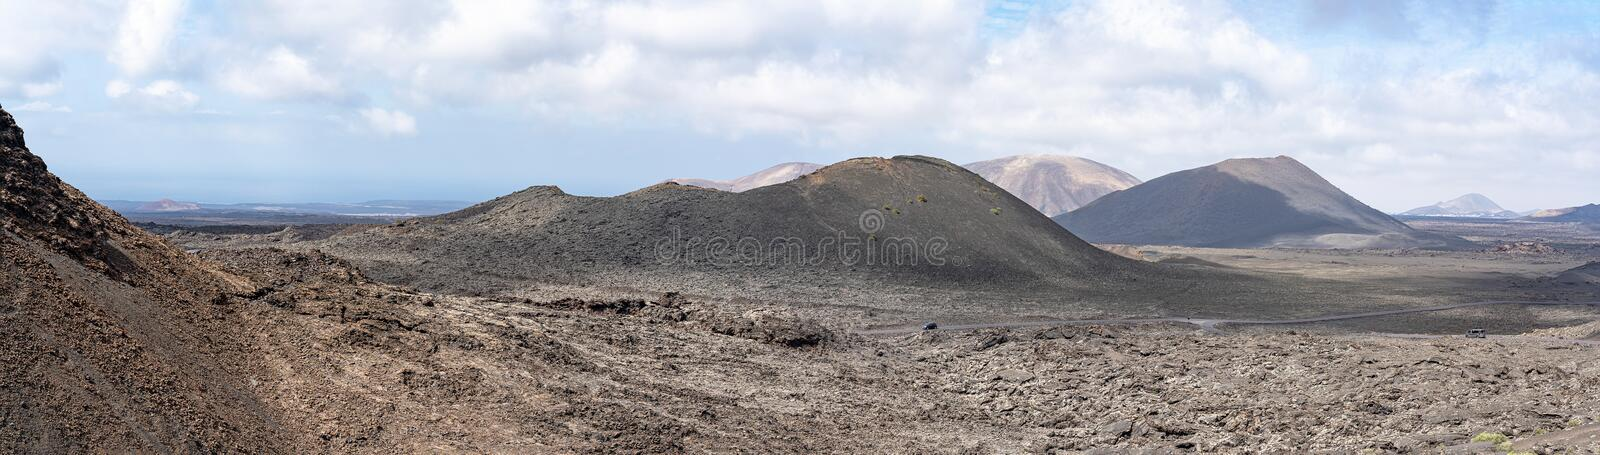 Panoramic picture of the various volcano craters in the national park Parque Nacional de Timanfaya, Lanzarote, Spain stock image